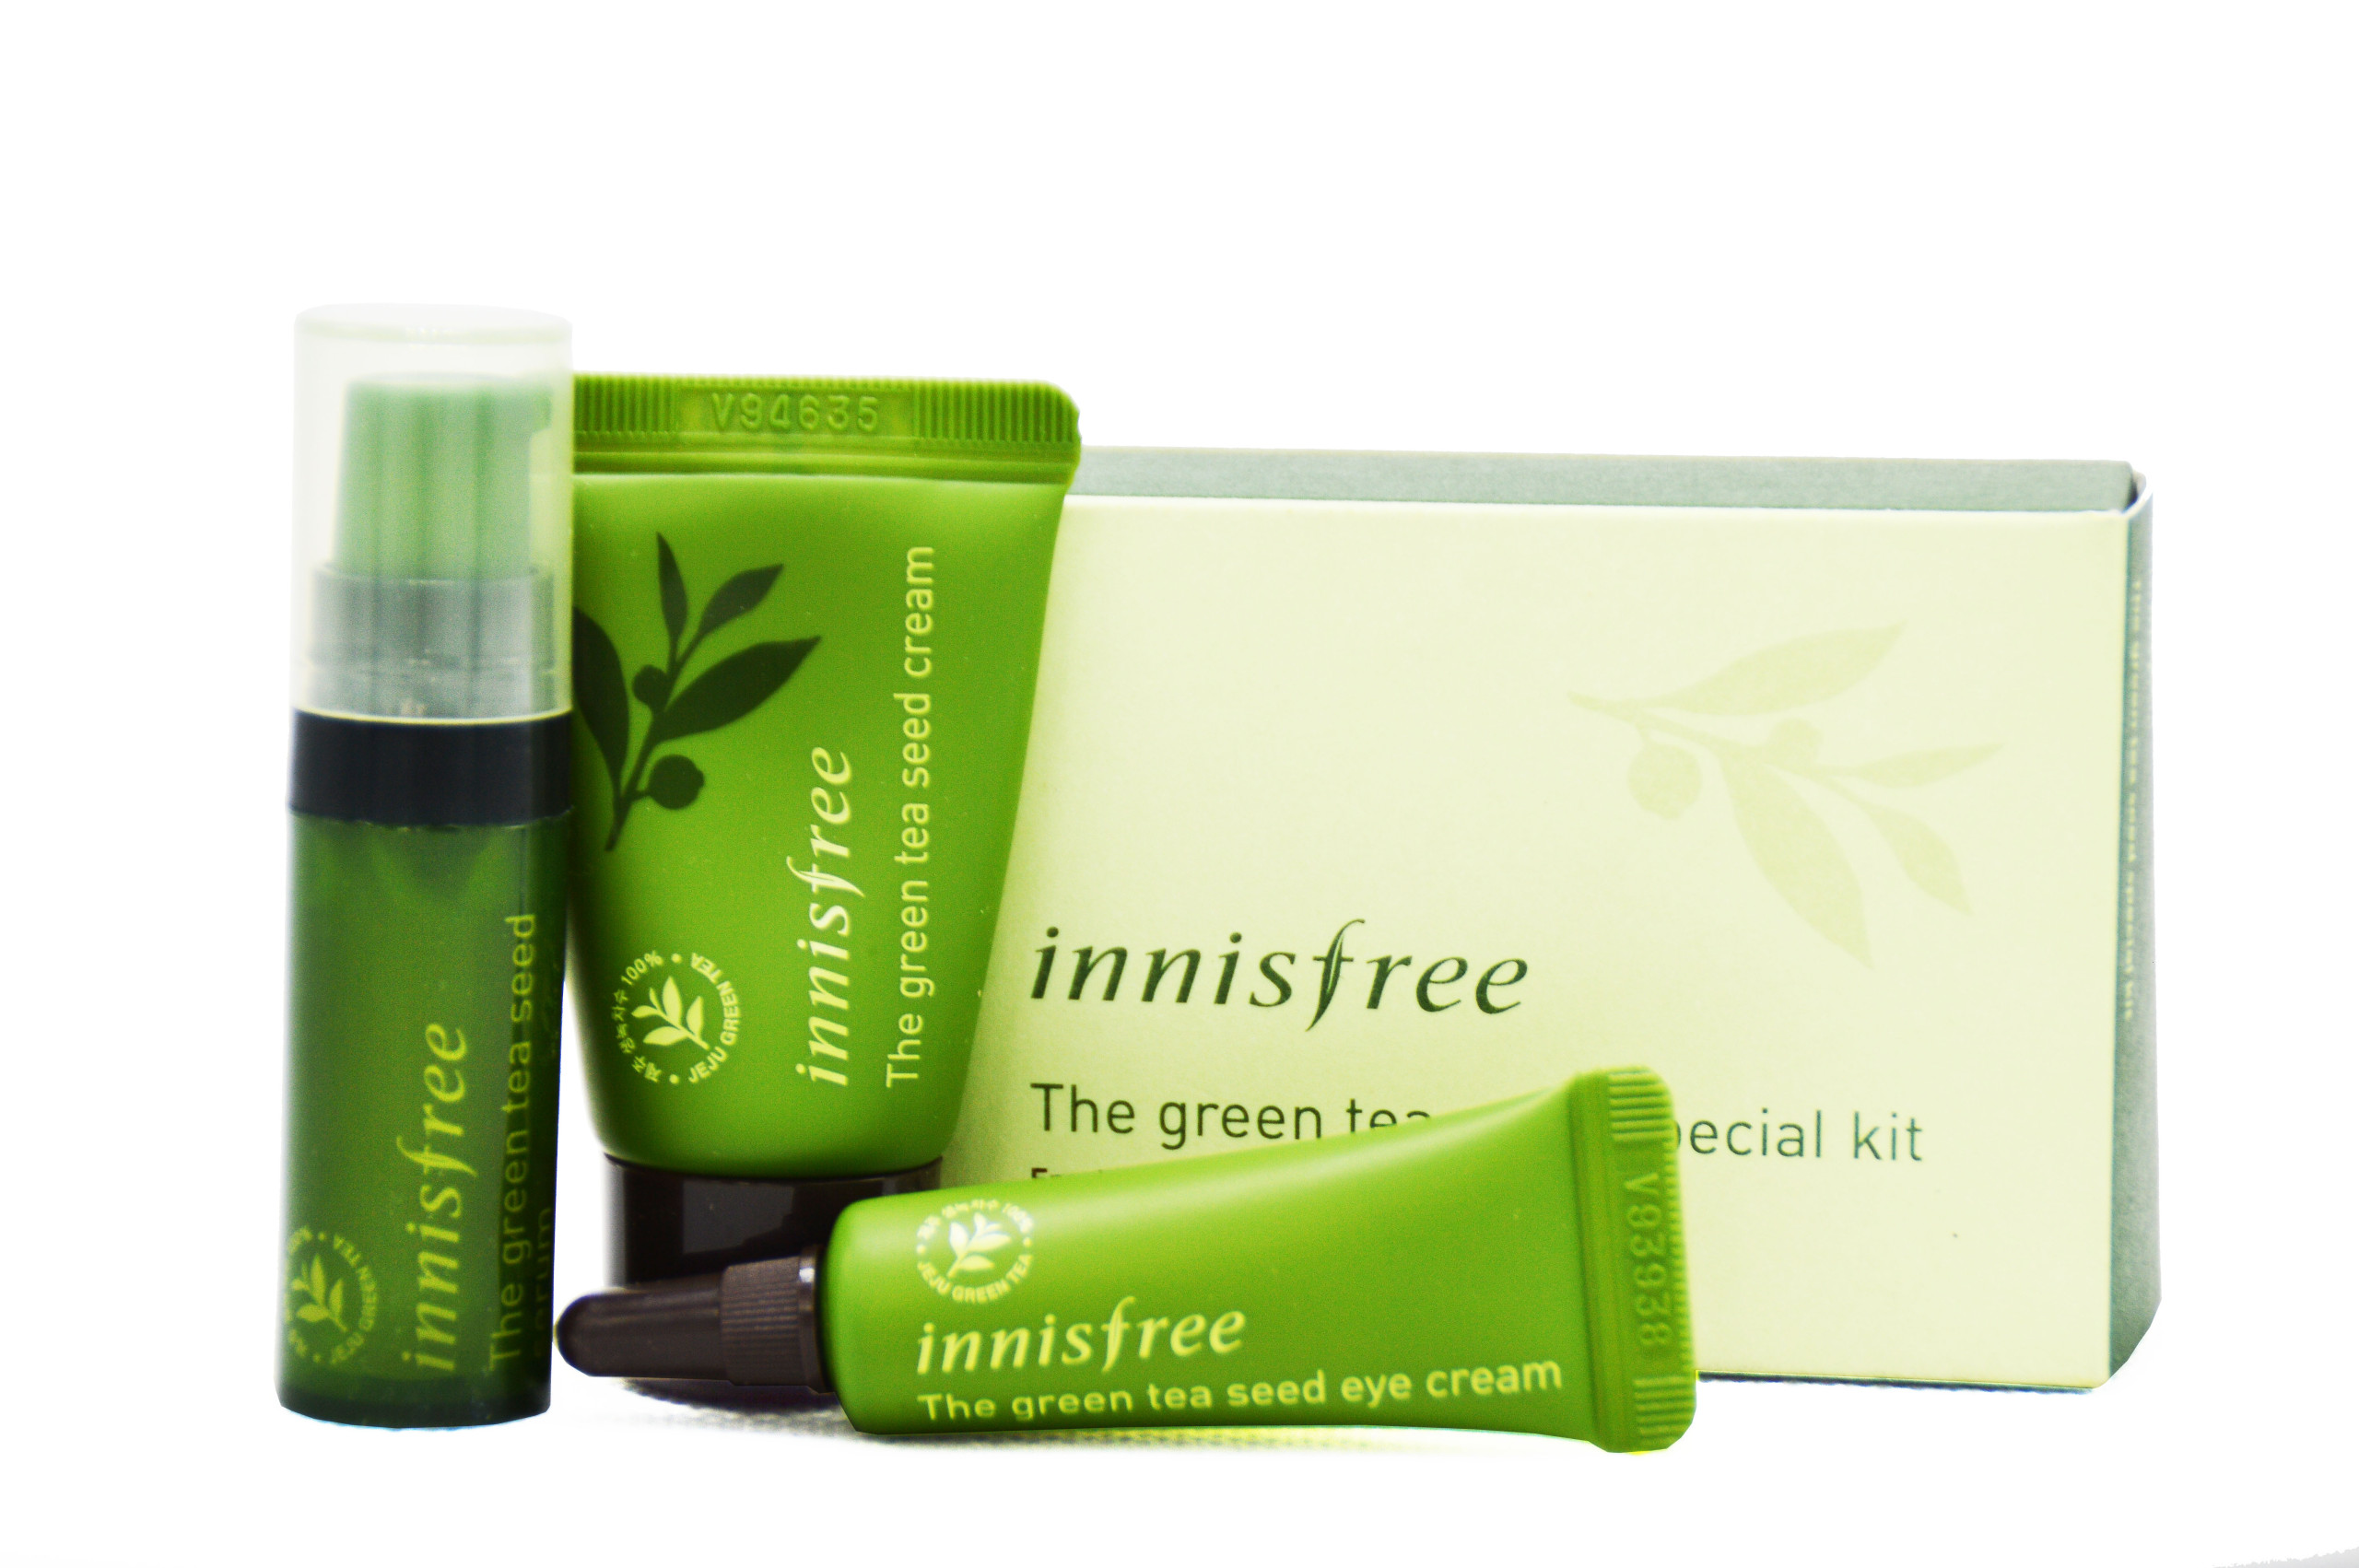 BỘ KIT CHĂM SÓC DA INNISFREE THE GREEN TEA SEED SPECIAL KIT